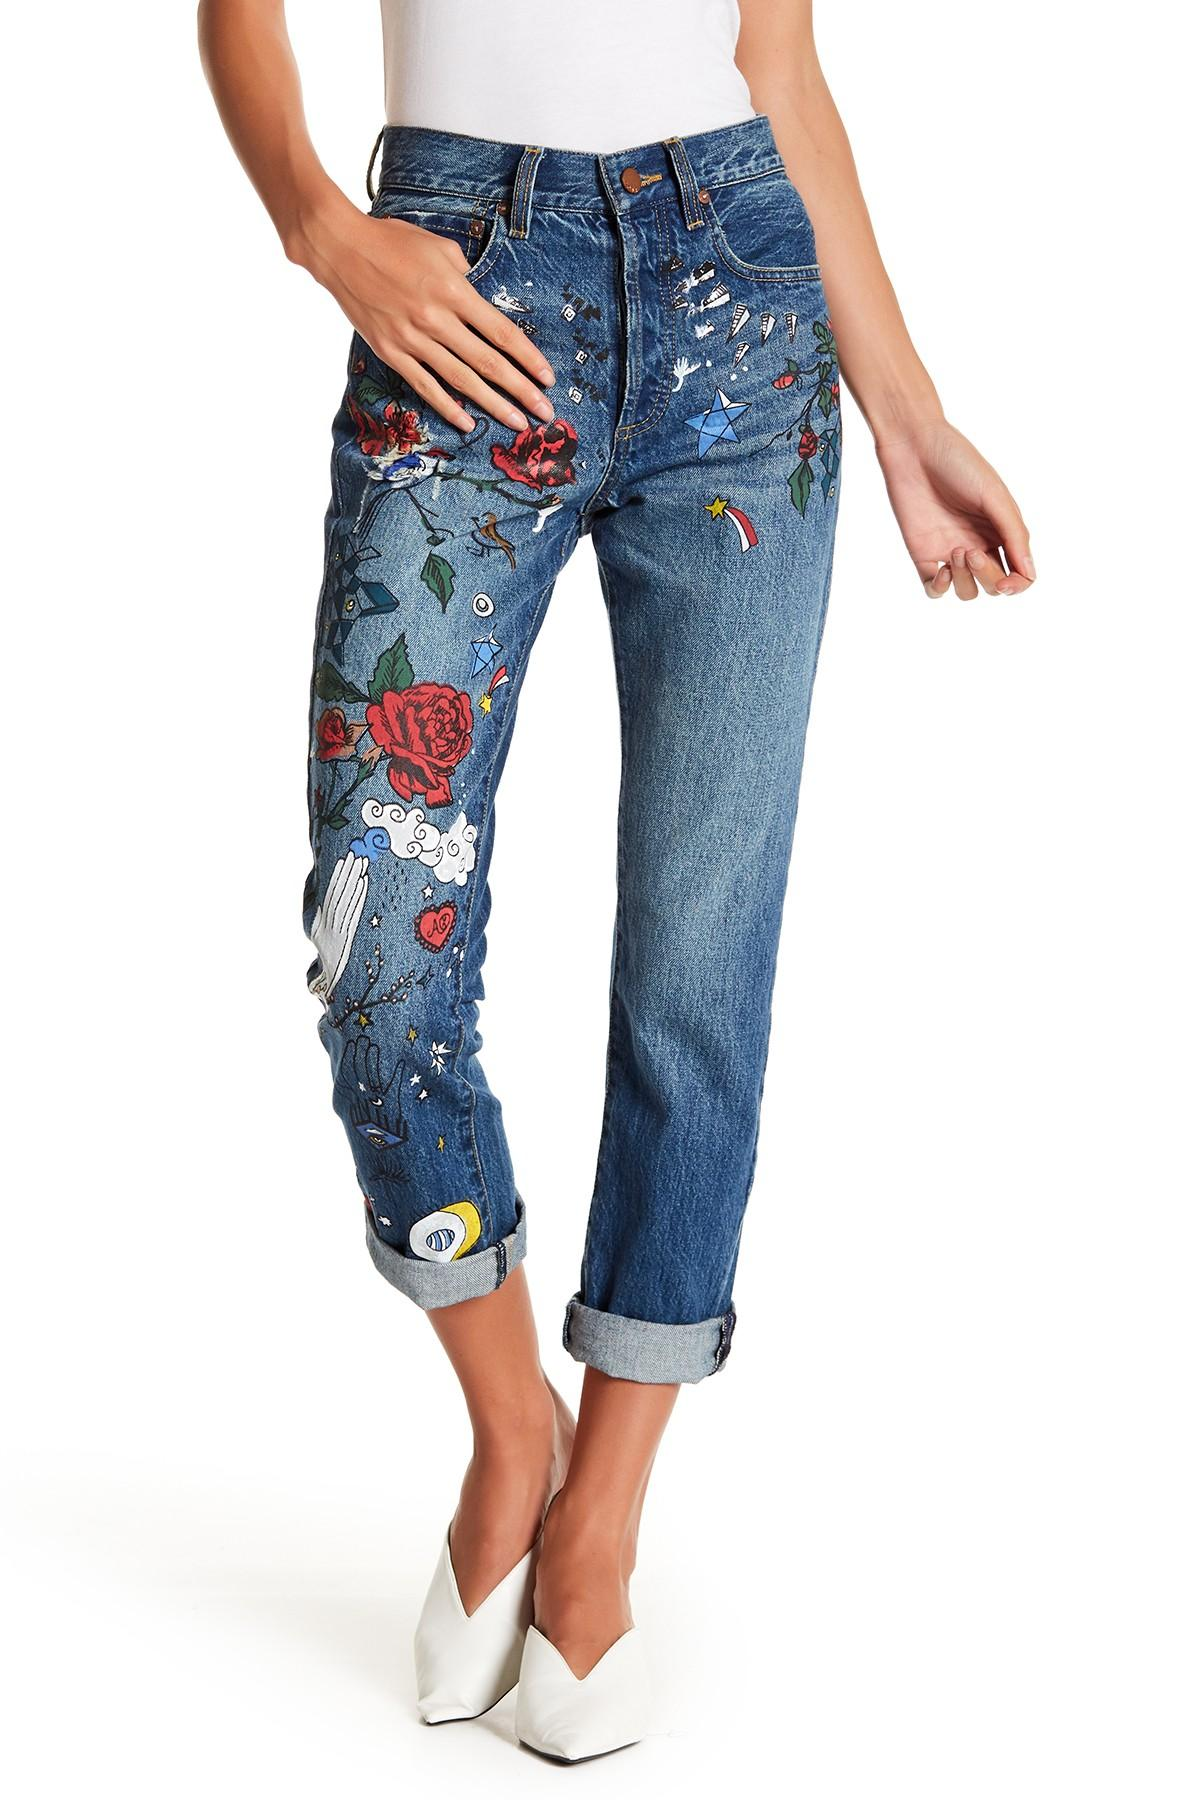 e71fd81a1f4e36 Alice + Olivia Amazing High Rise Painted Girlfriend Jeans in Blue - Lyst